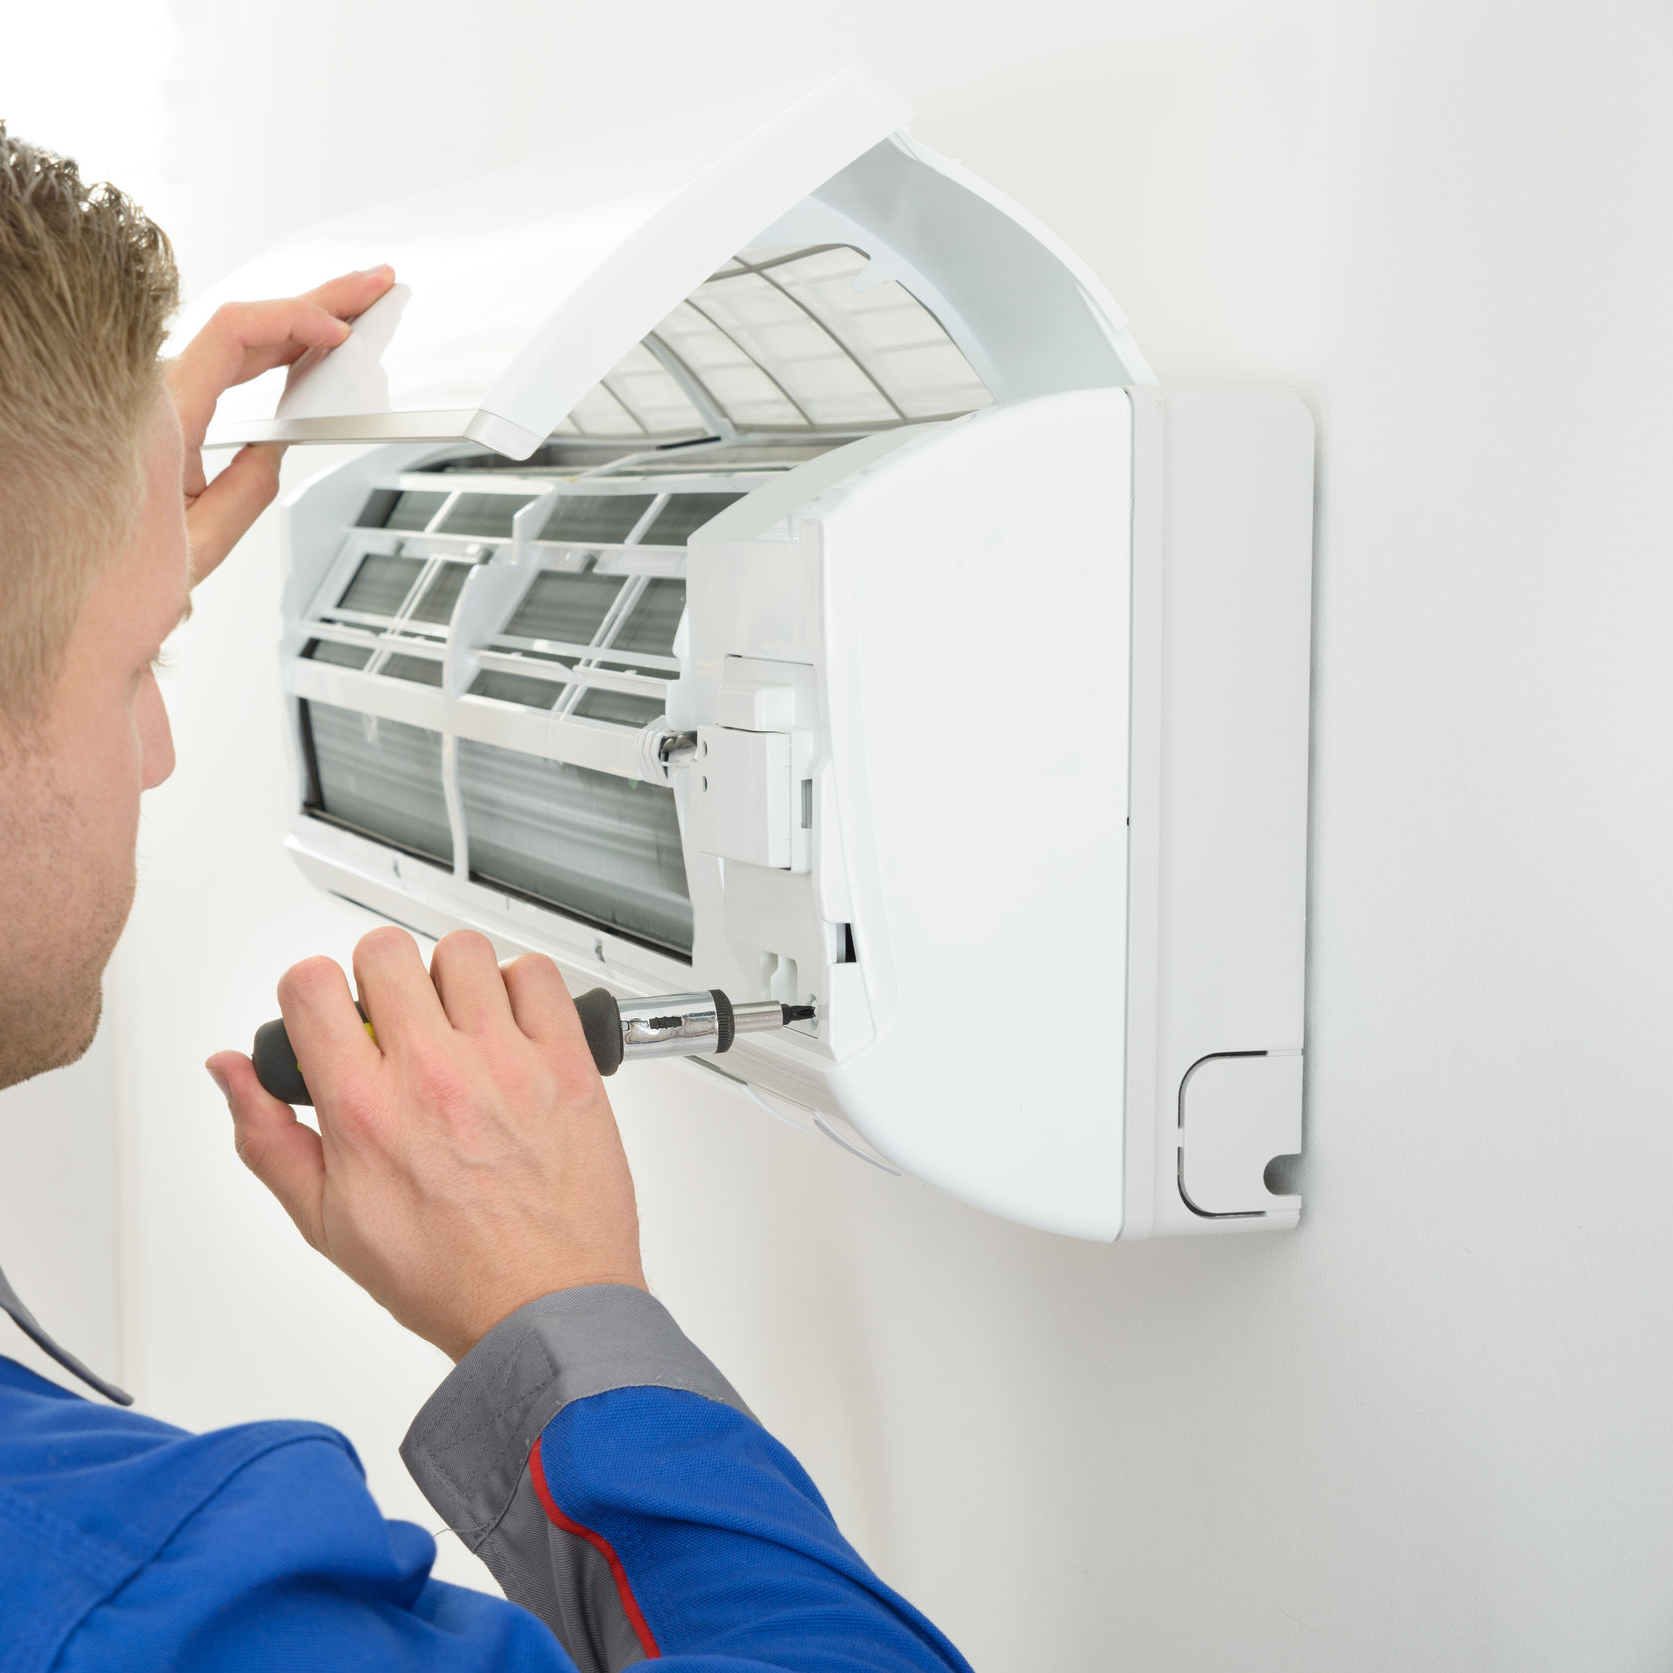 Replacing parts of an indoor AC unit